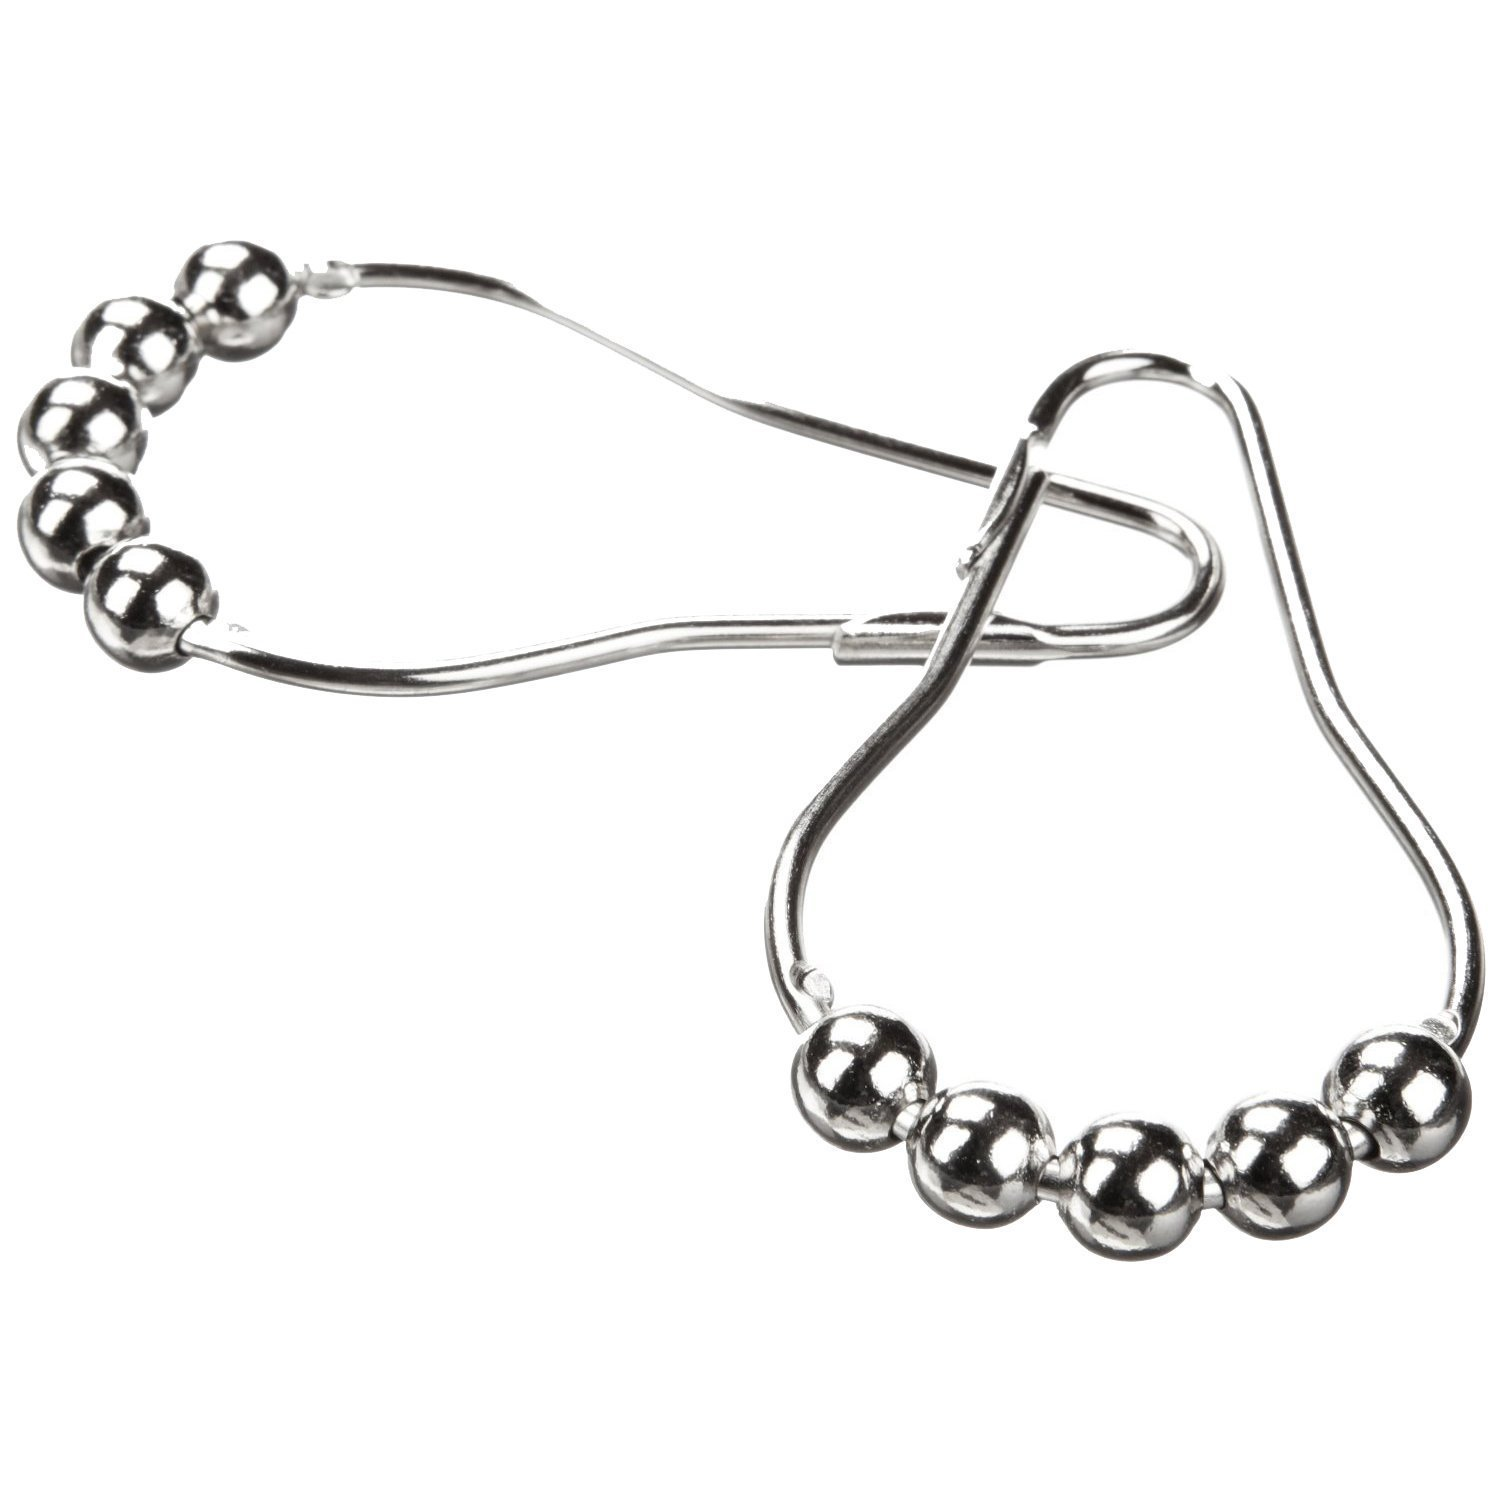 SODIAL(R)Polished Chrome Rolling Shower Curtain Rings - Set of 24 Heavy Duty Hooks